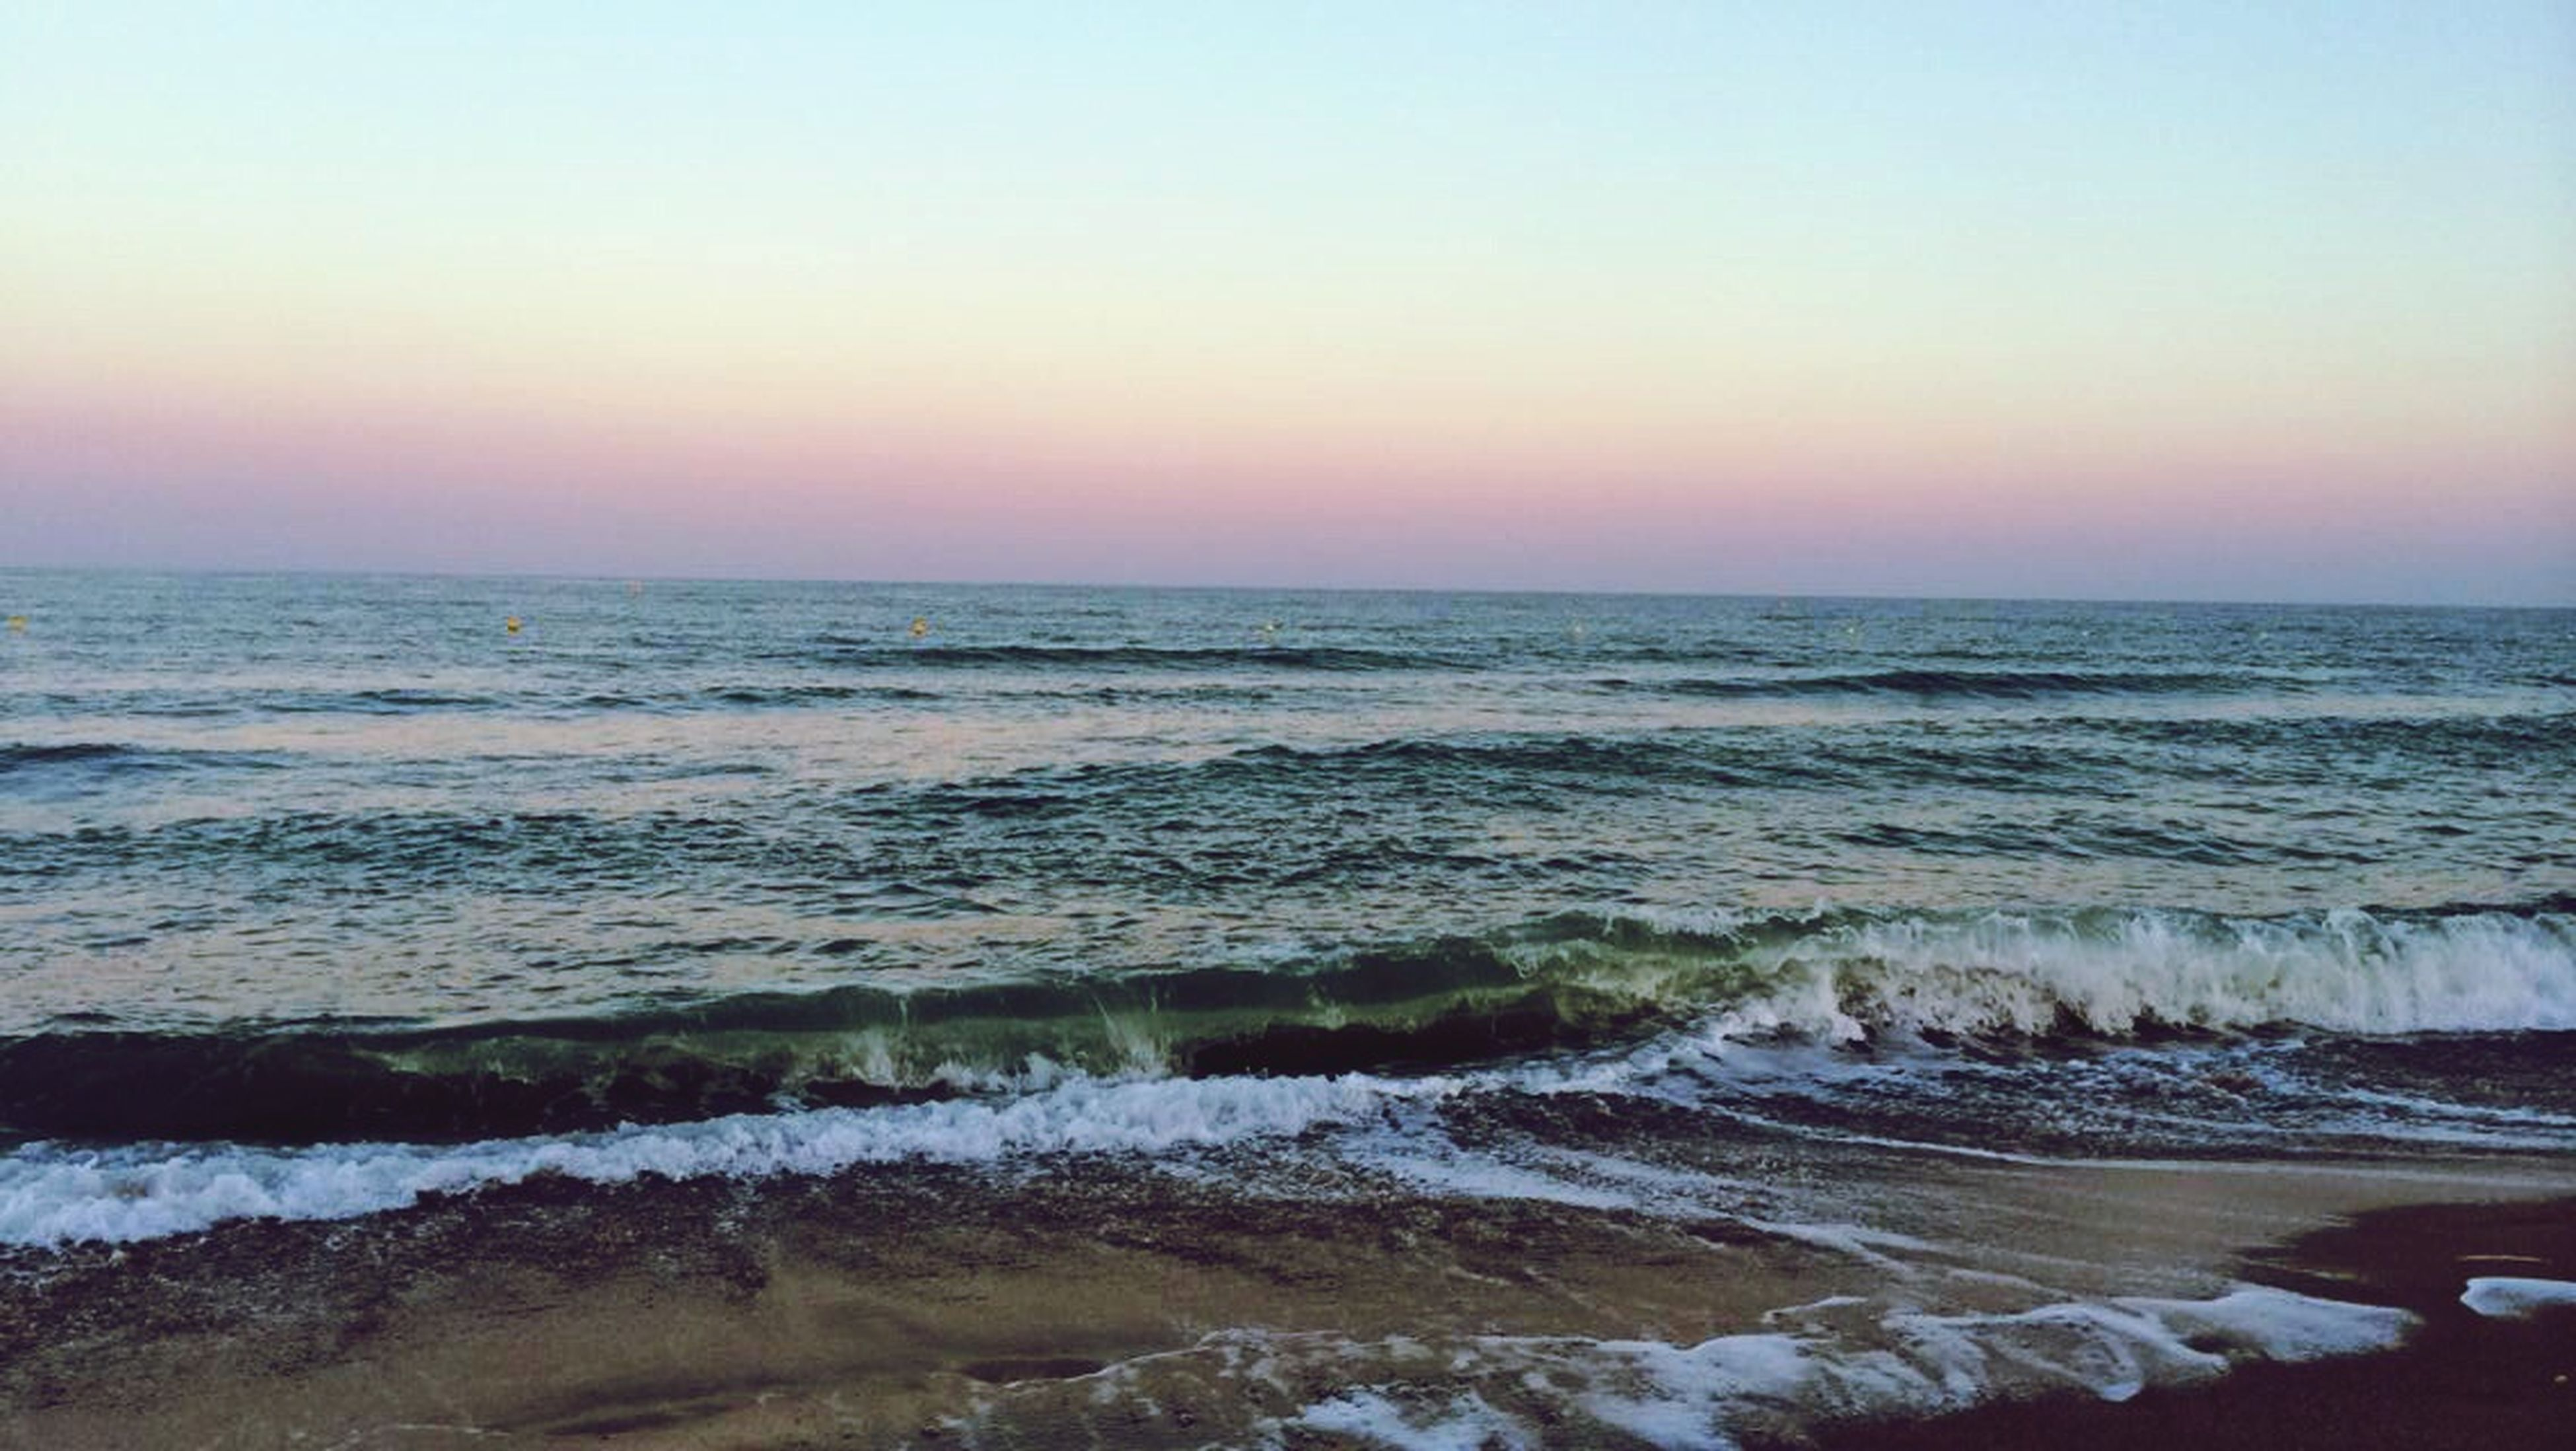 sea, horizon over water, water, beach, scenics, sunset, tranquil scene, beauty in nature, shore, clear sky, tranquility, wave, copy space, nature, idyllic, surf, sky, orange color, remote, non-urban scene